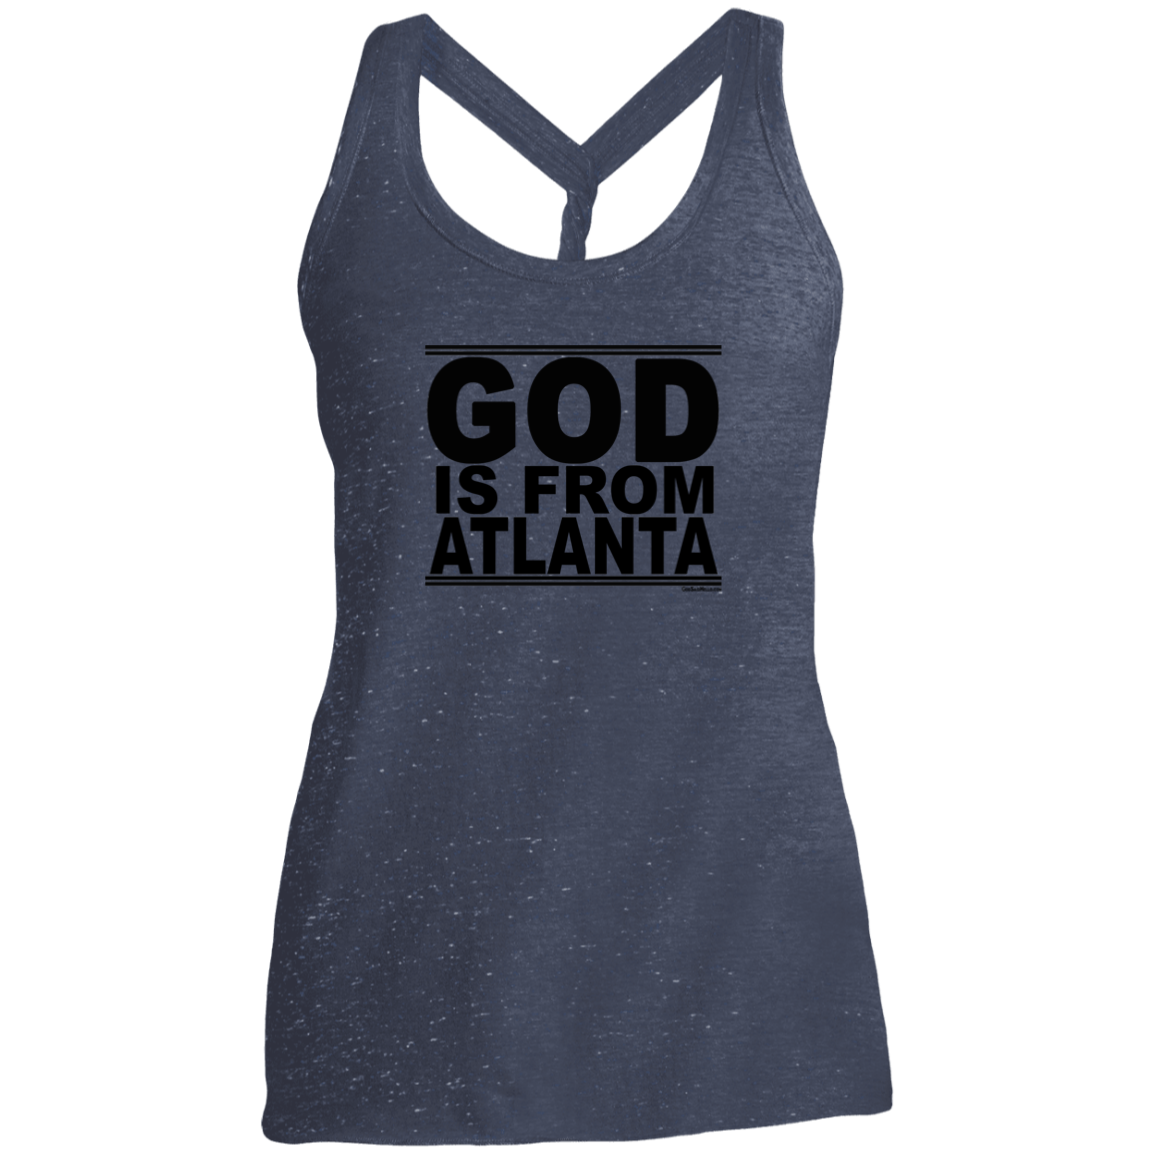 #GodIsFromAtlanta - Women's Twist Back Tank Top